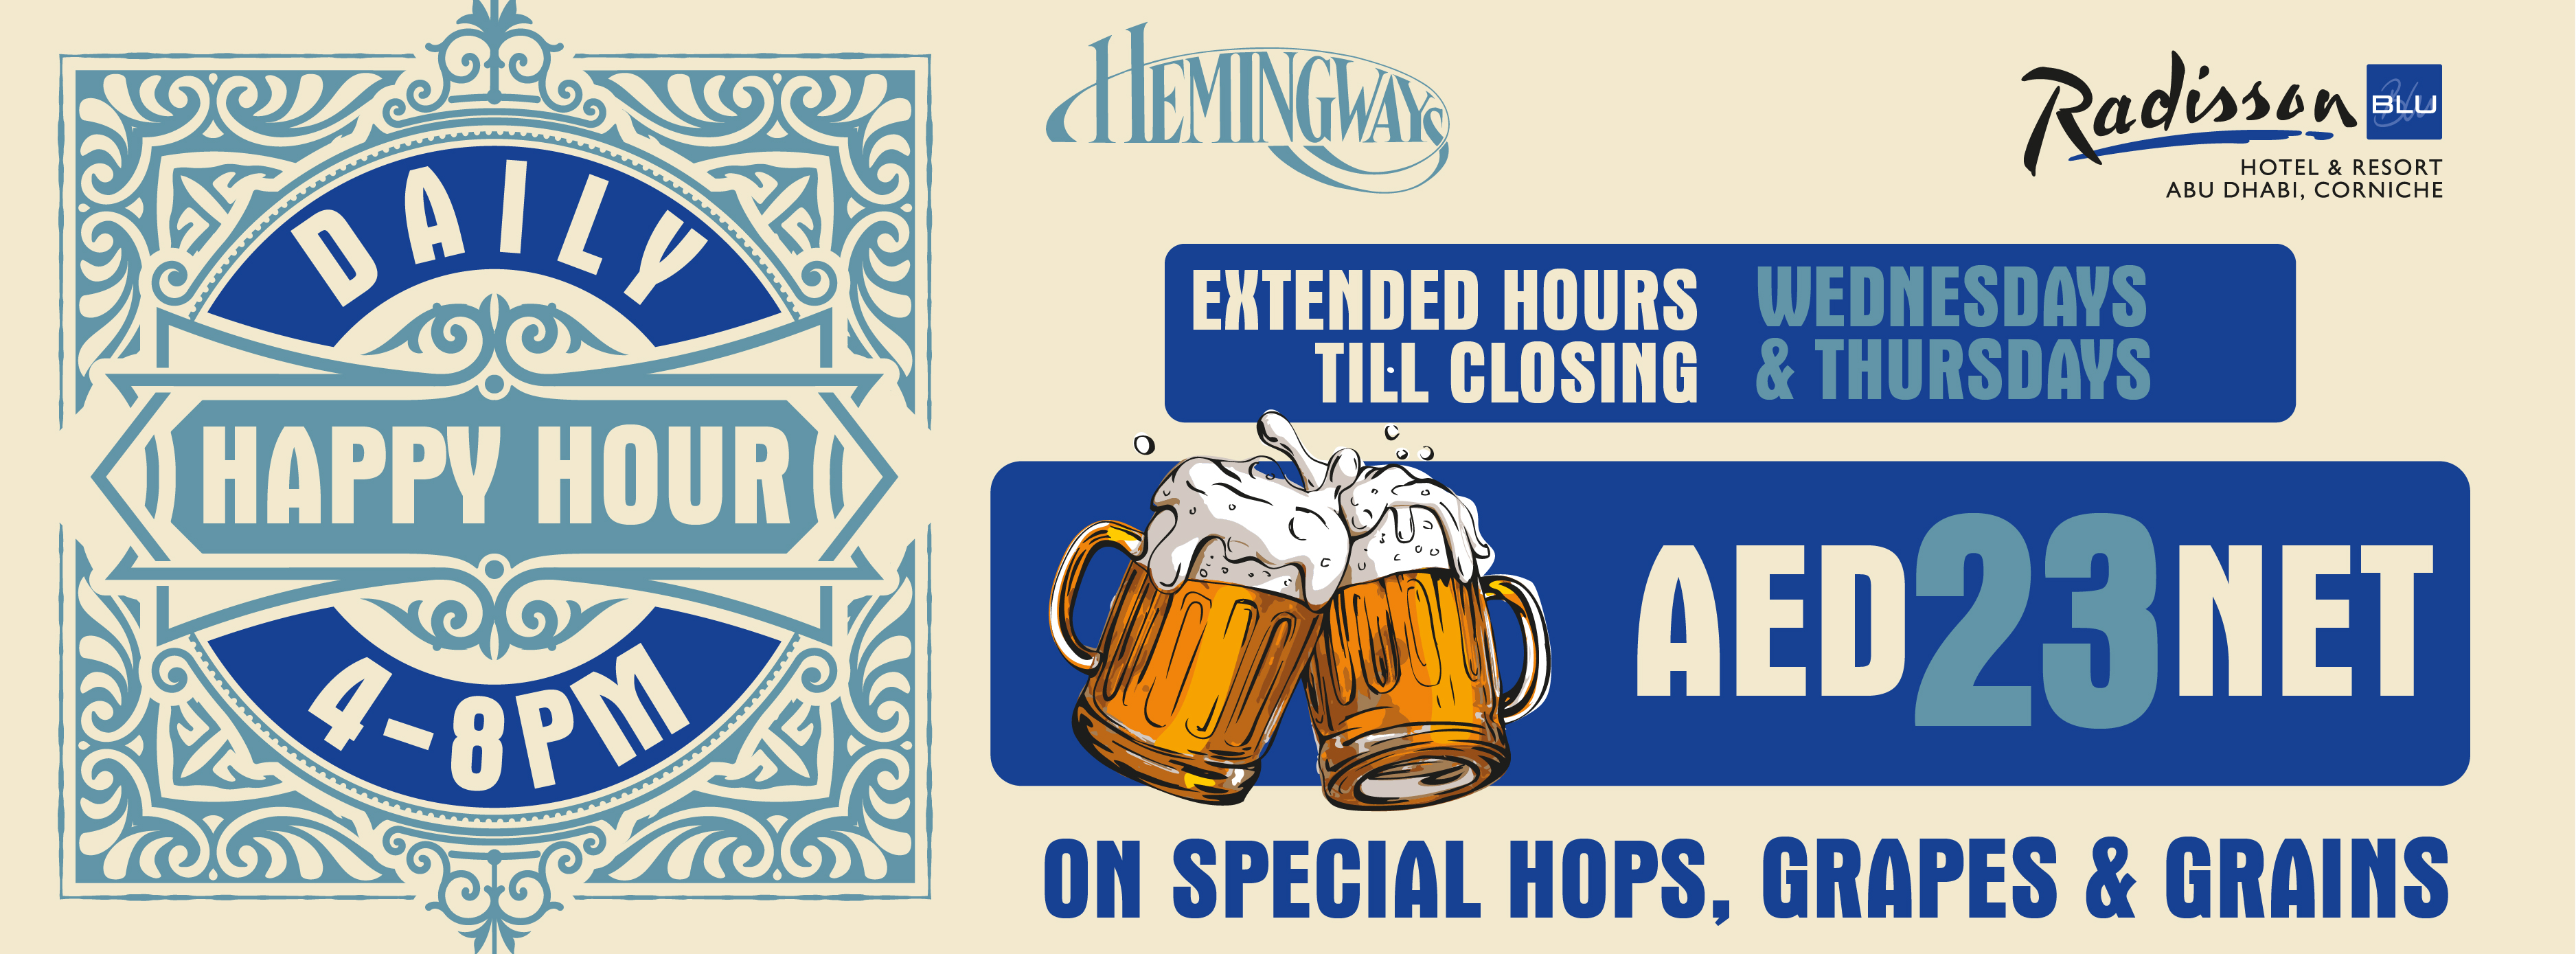 Daily Happy Hour @ Hemingway's